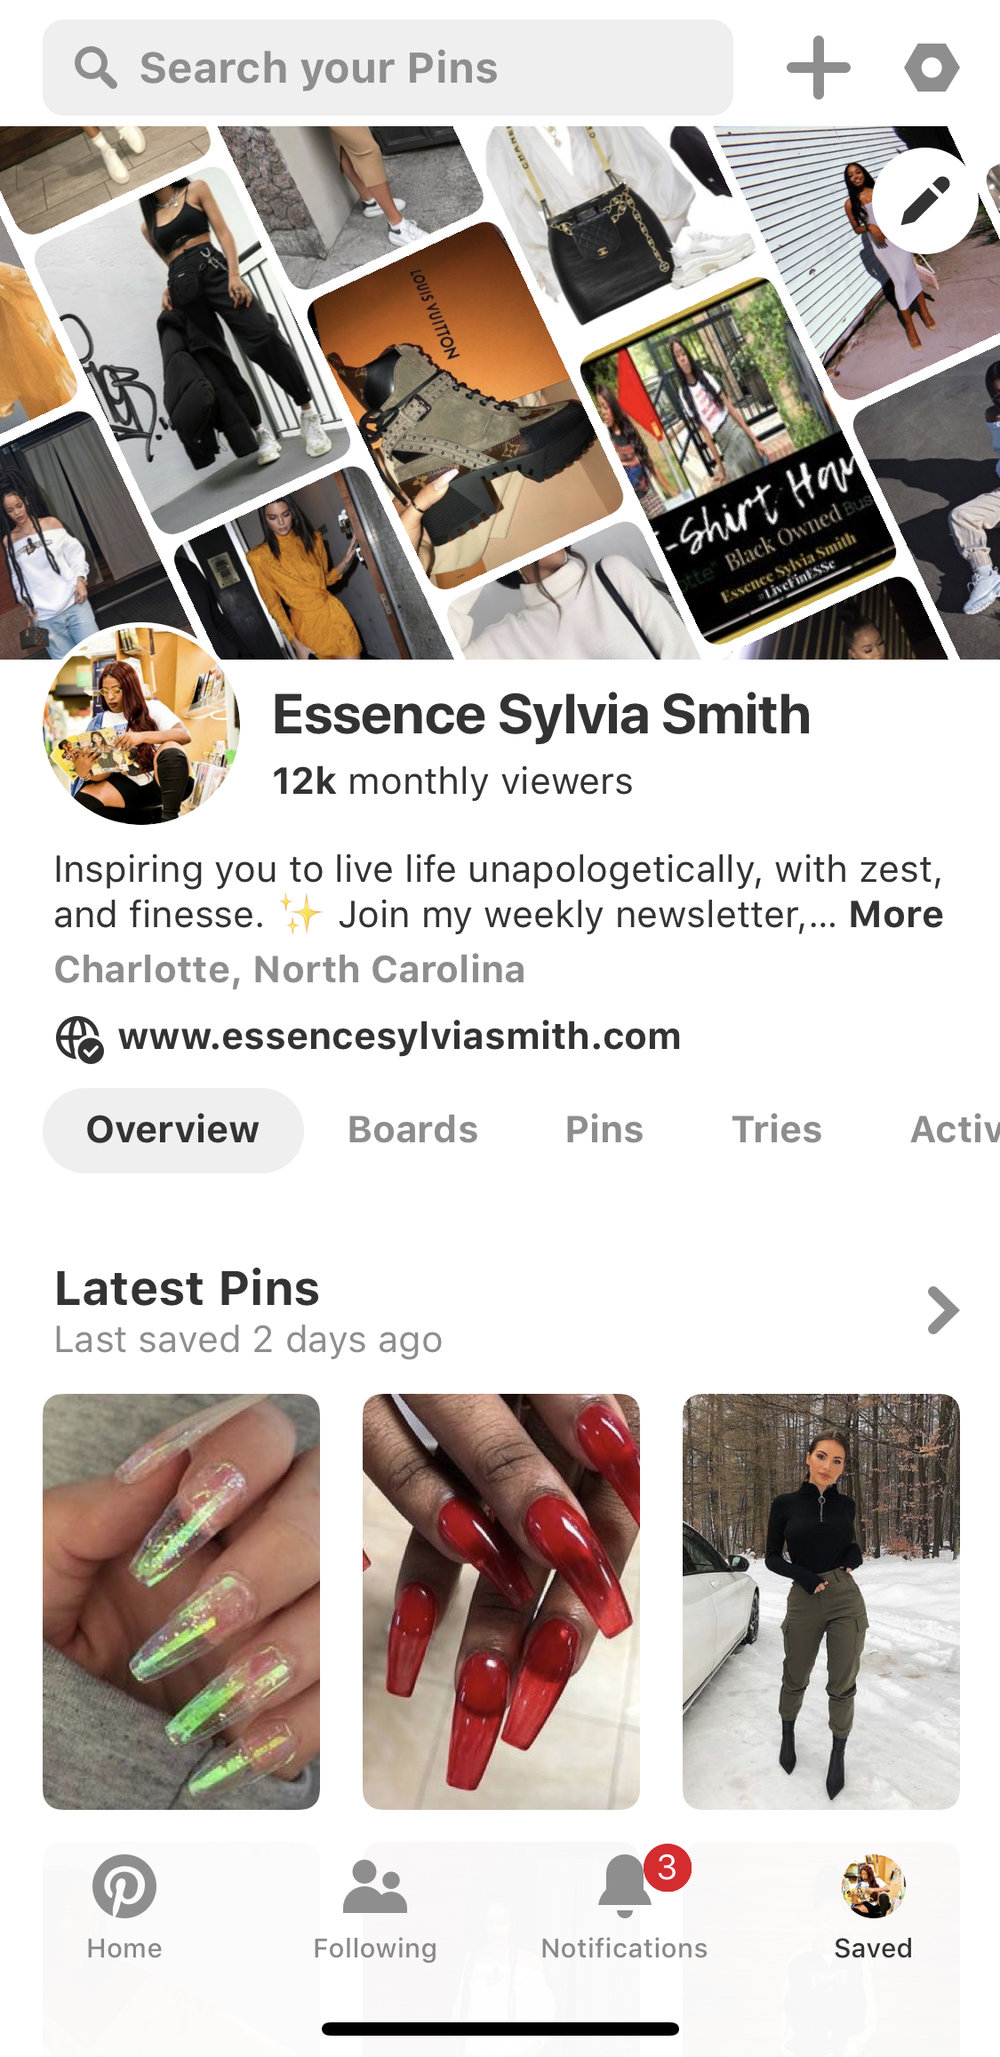 My new Pinterest strategy is to post original and fresh content, to use Pinterest as an everyday user, and as treat it more like a search engine than social media. If you want more tips contact  The Avenu .